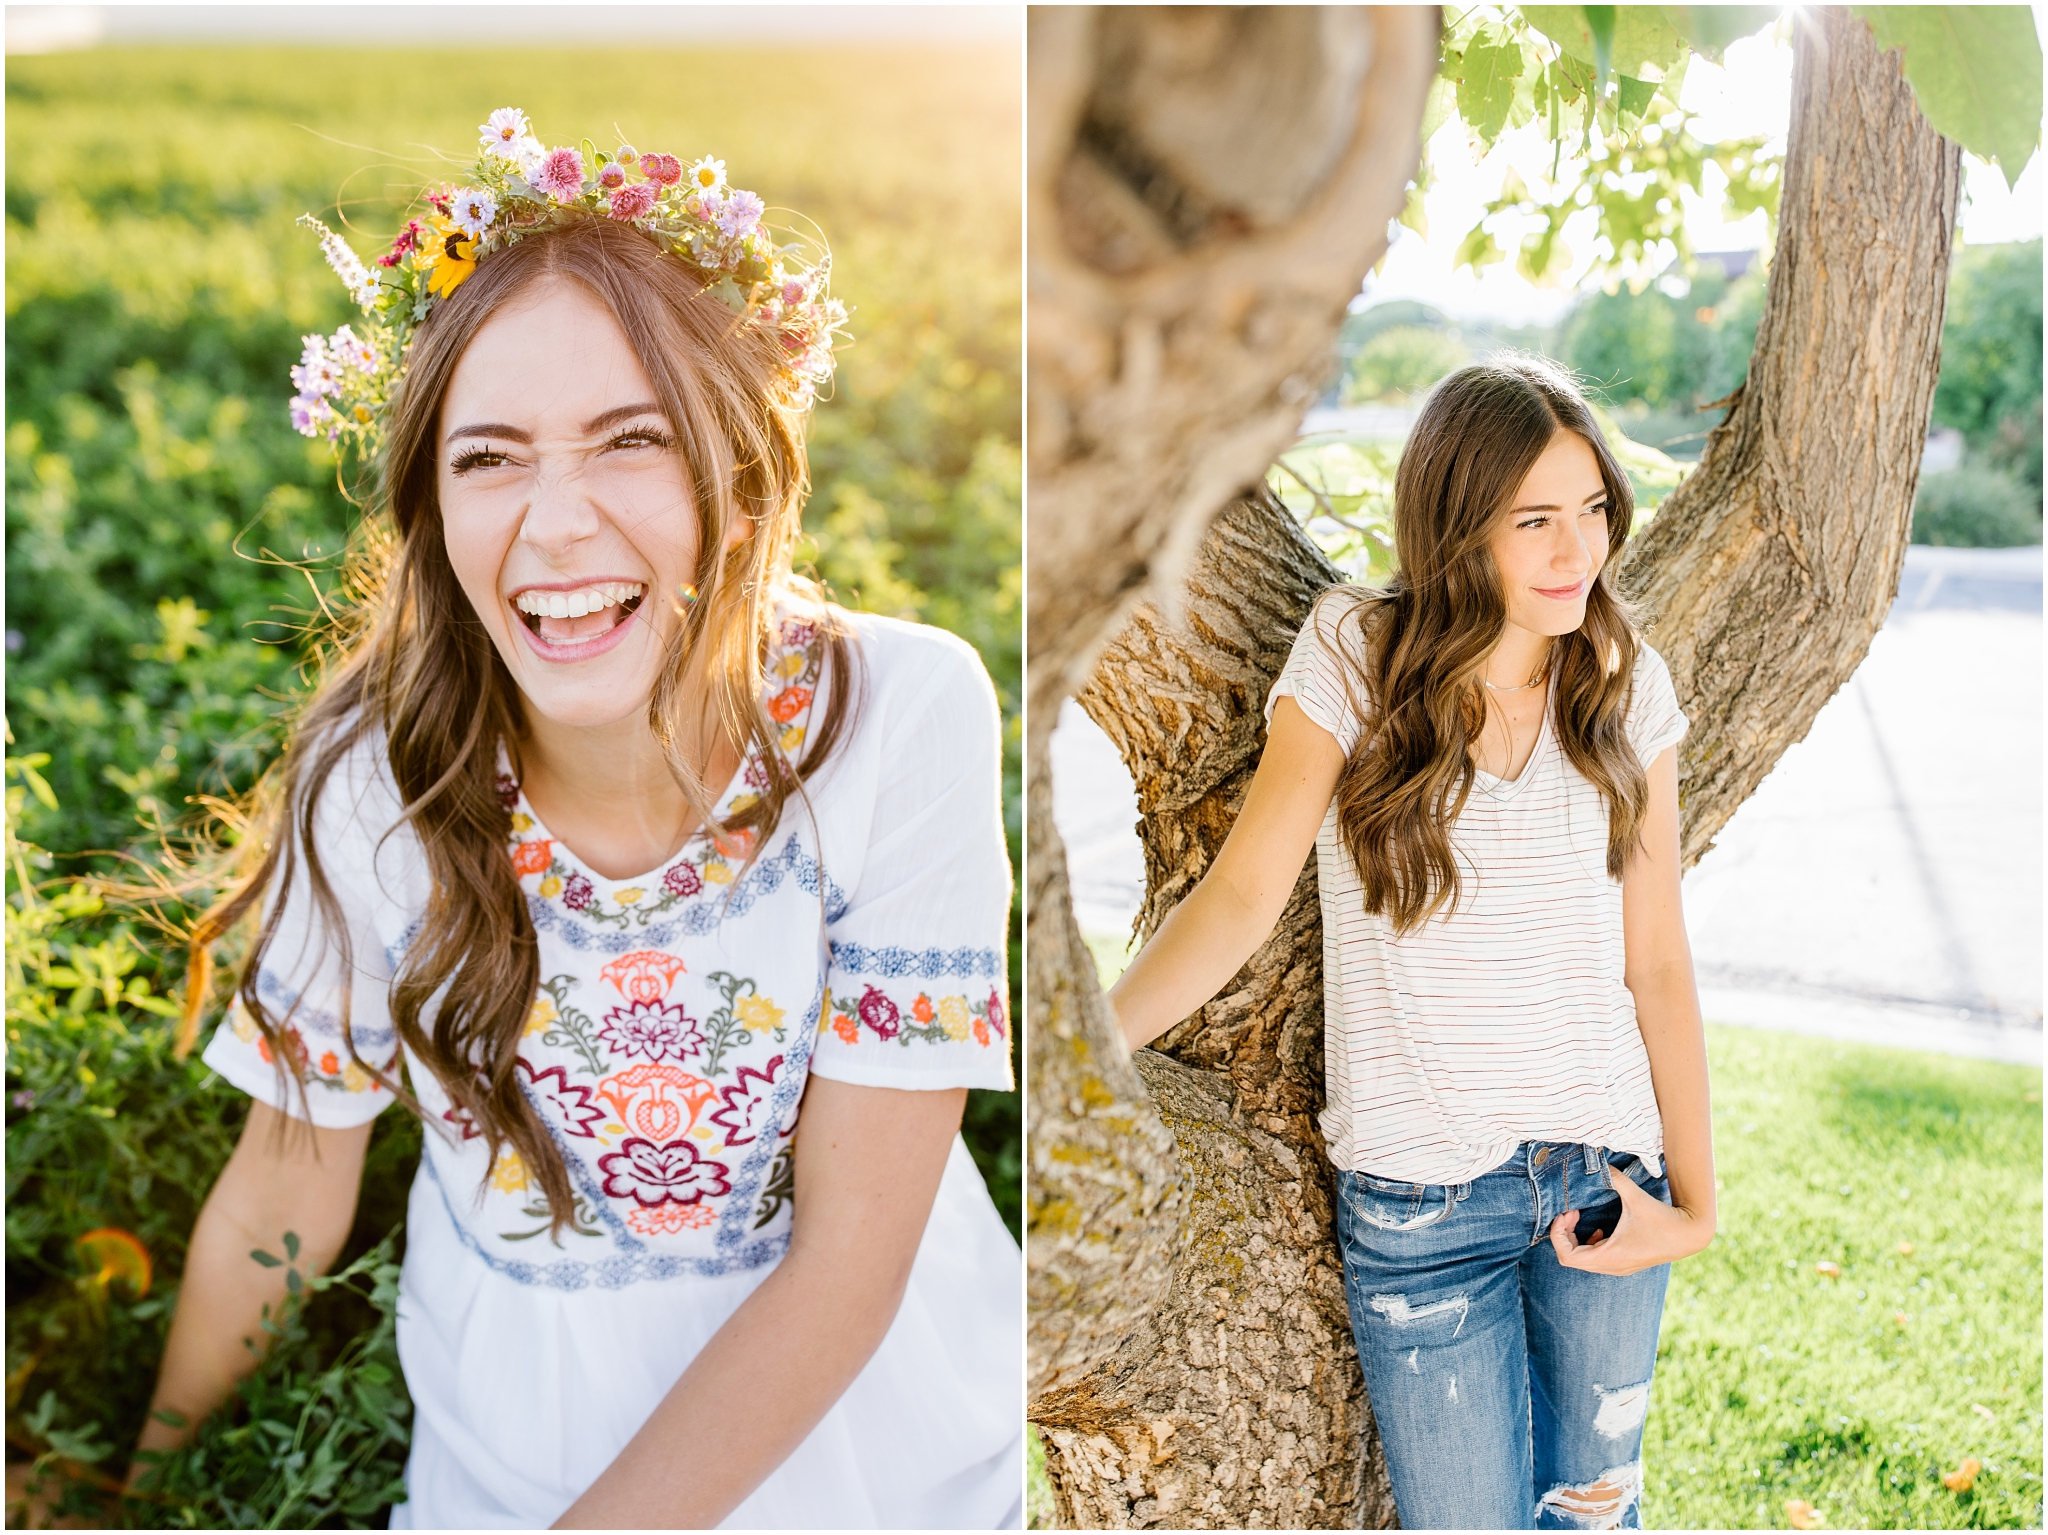 Adelyn--109_Lizzie-B-Imagery-Utah-Family-Photographer-Park-City-Salt-Lake-City-Central-Utah-Senior-Session.jpg